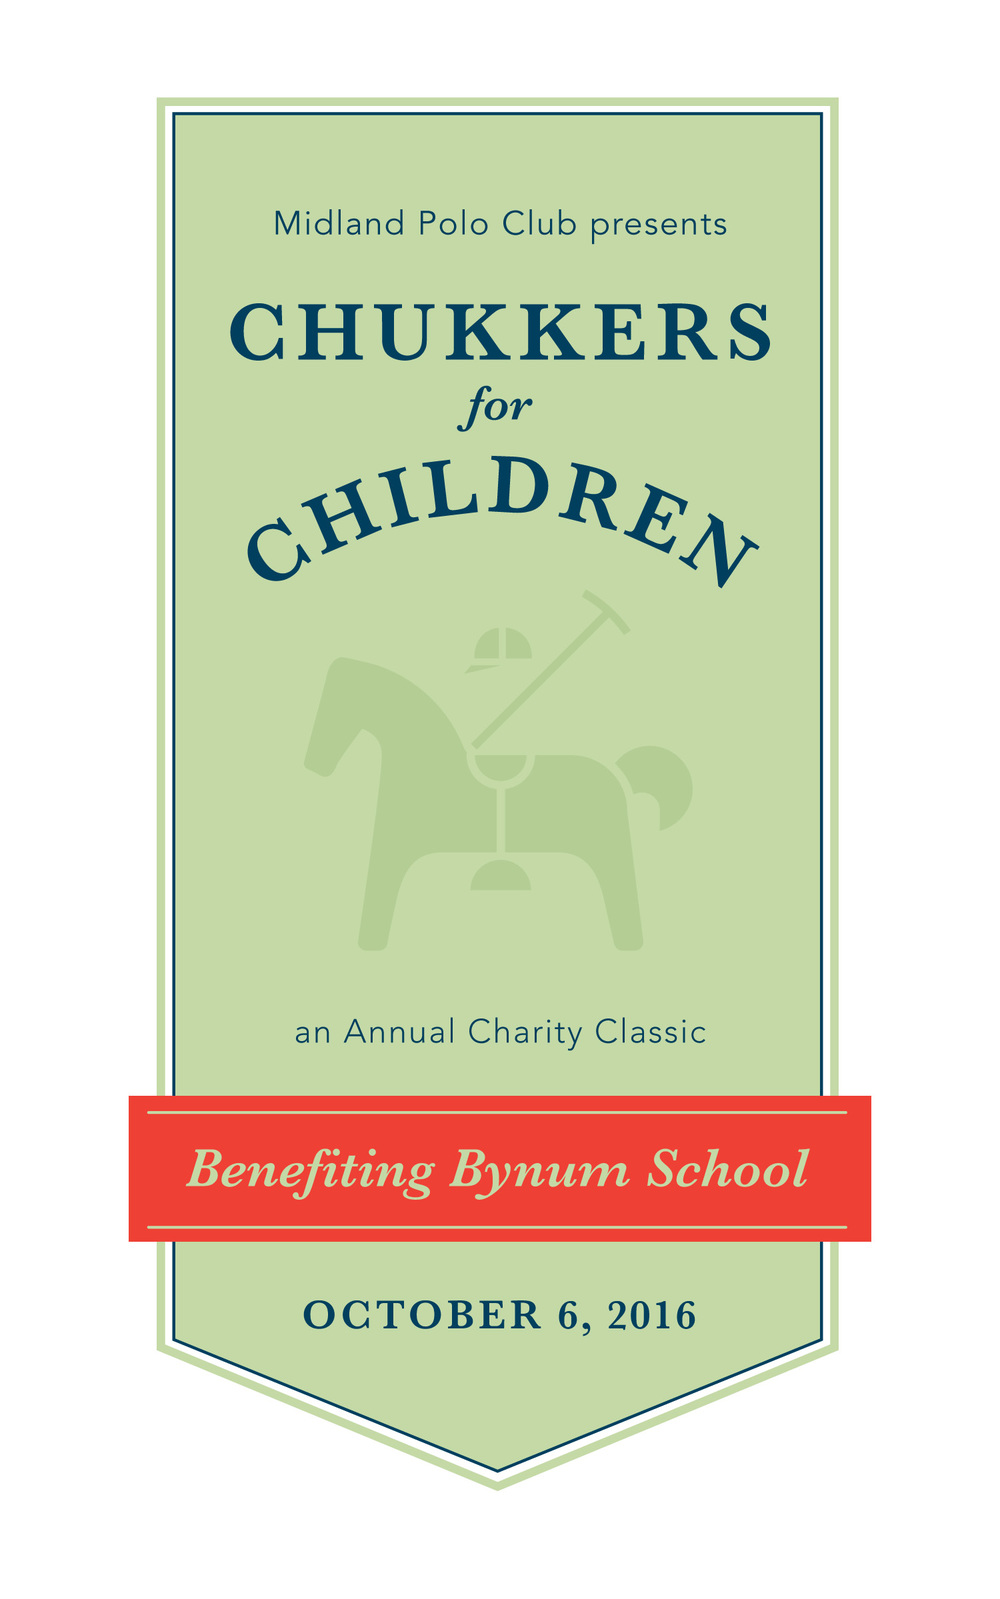 Chukkers for Children.jpg